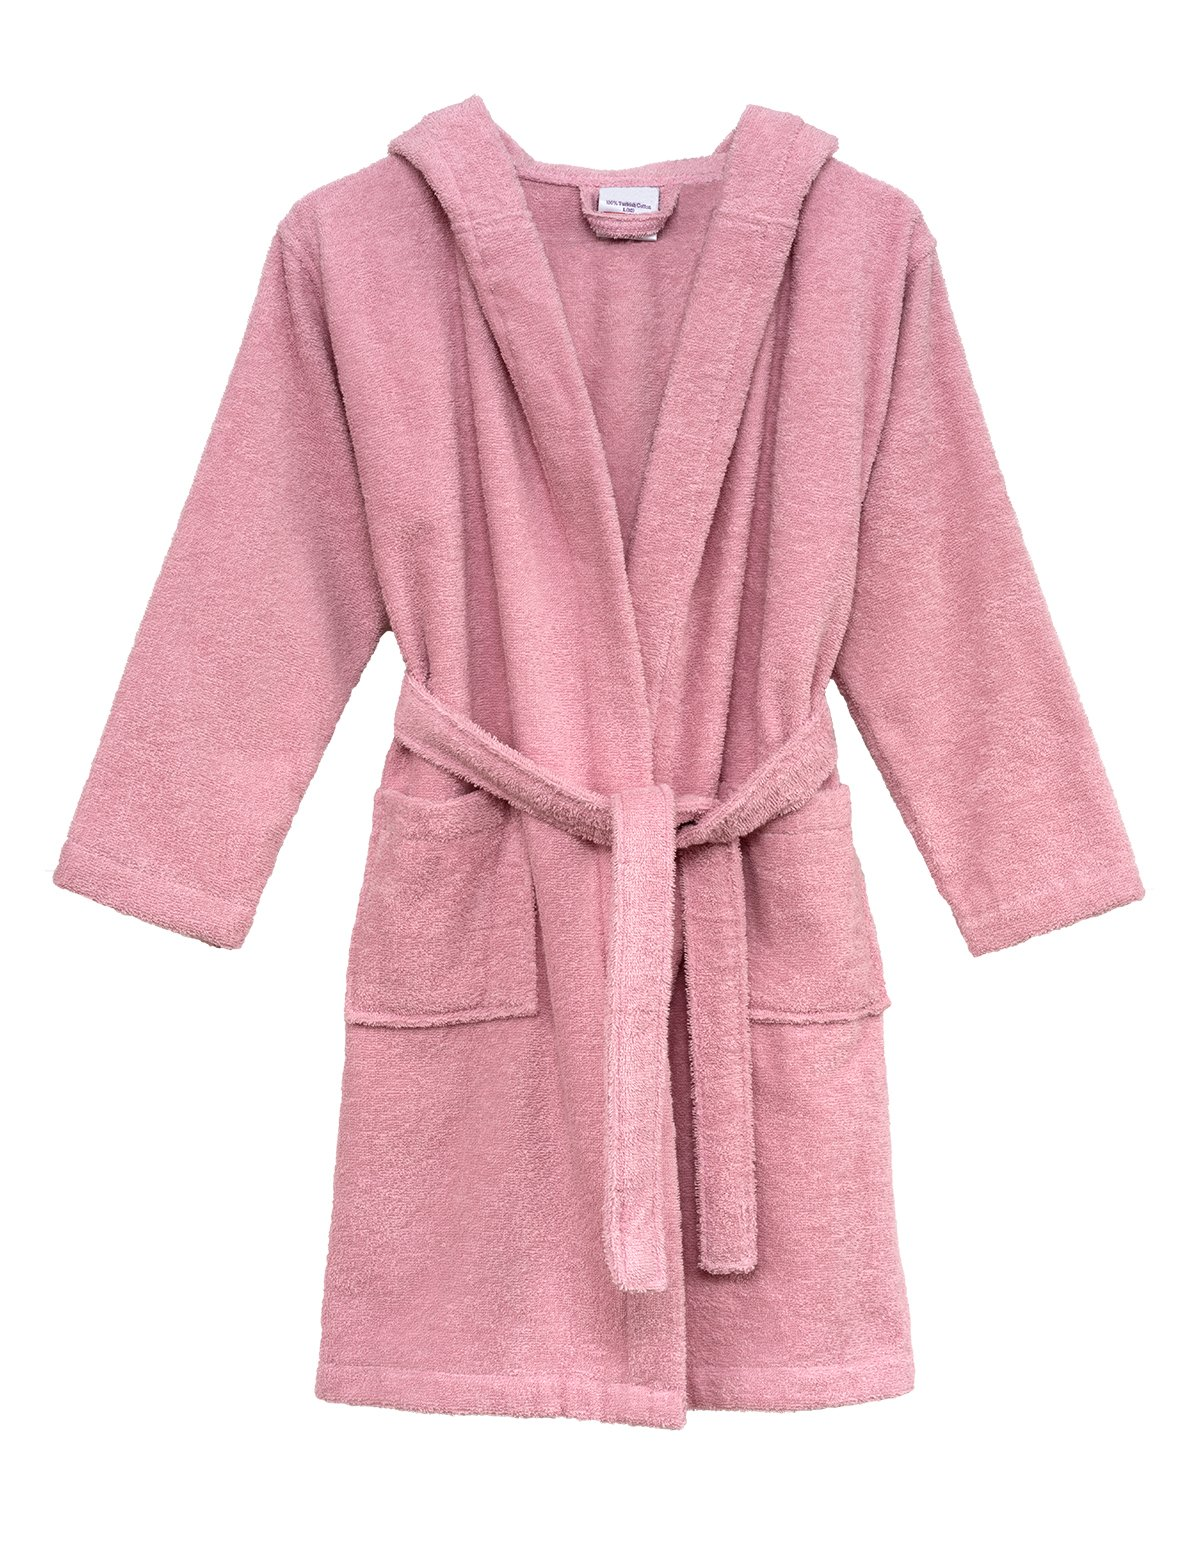 TowelSelections Little Girls' Robe, Kids Hooded Cotton Terry Bathrobe Cover-up Size 6 Coral Blush